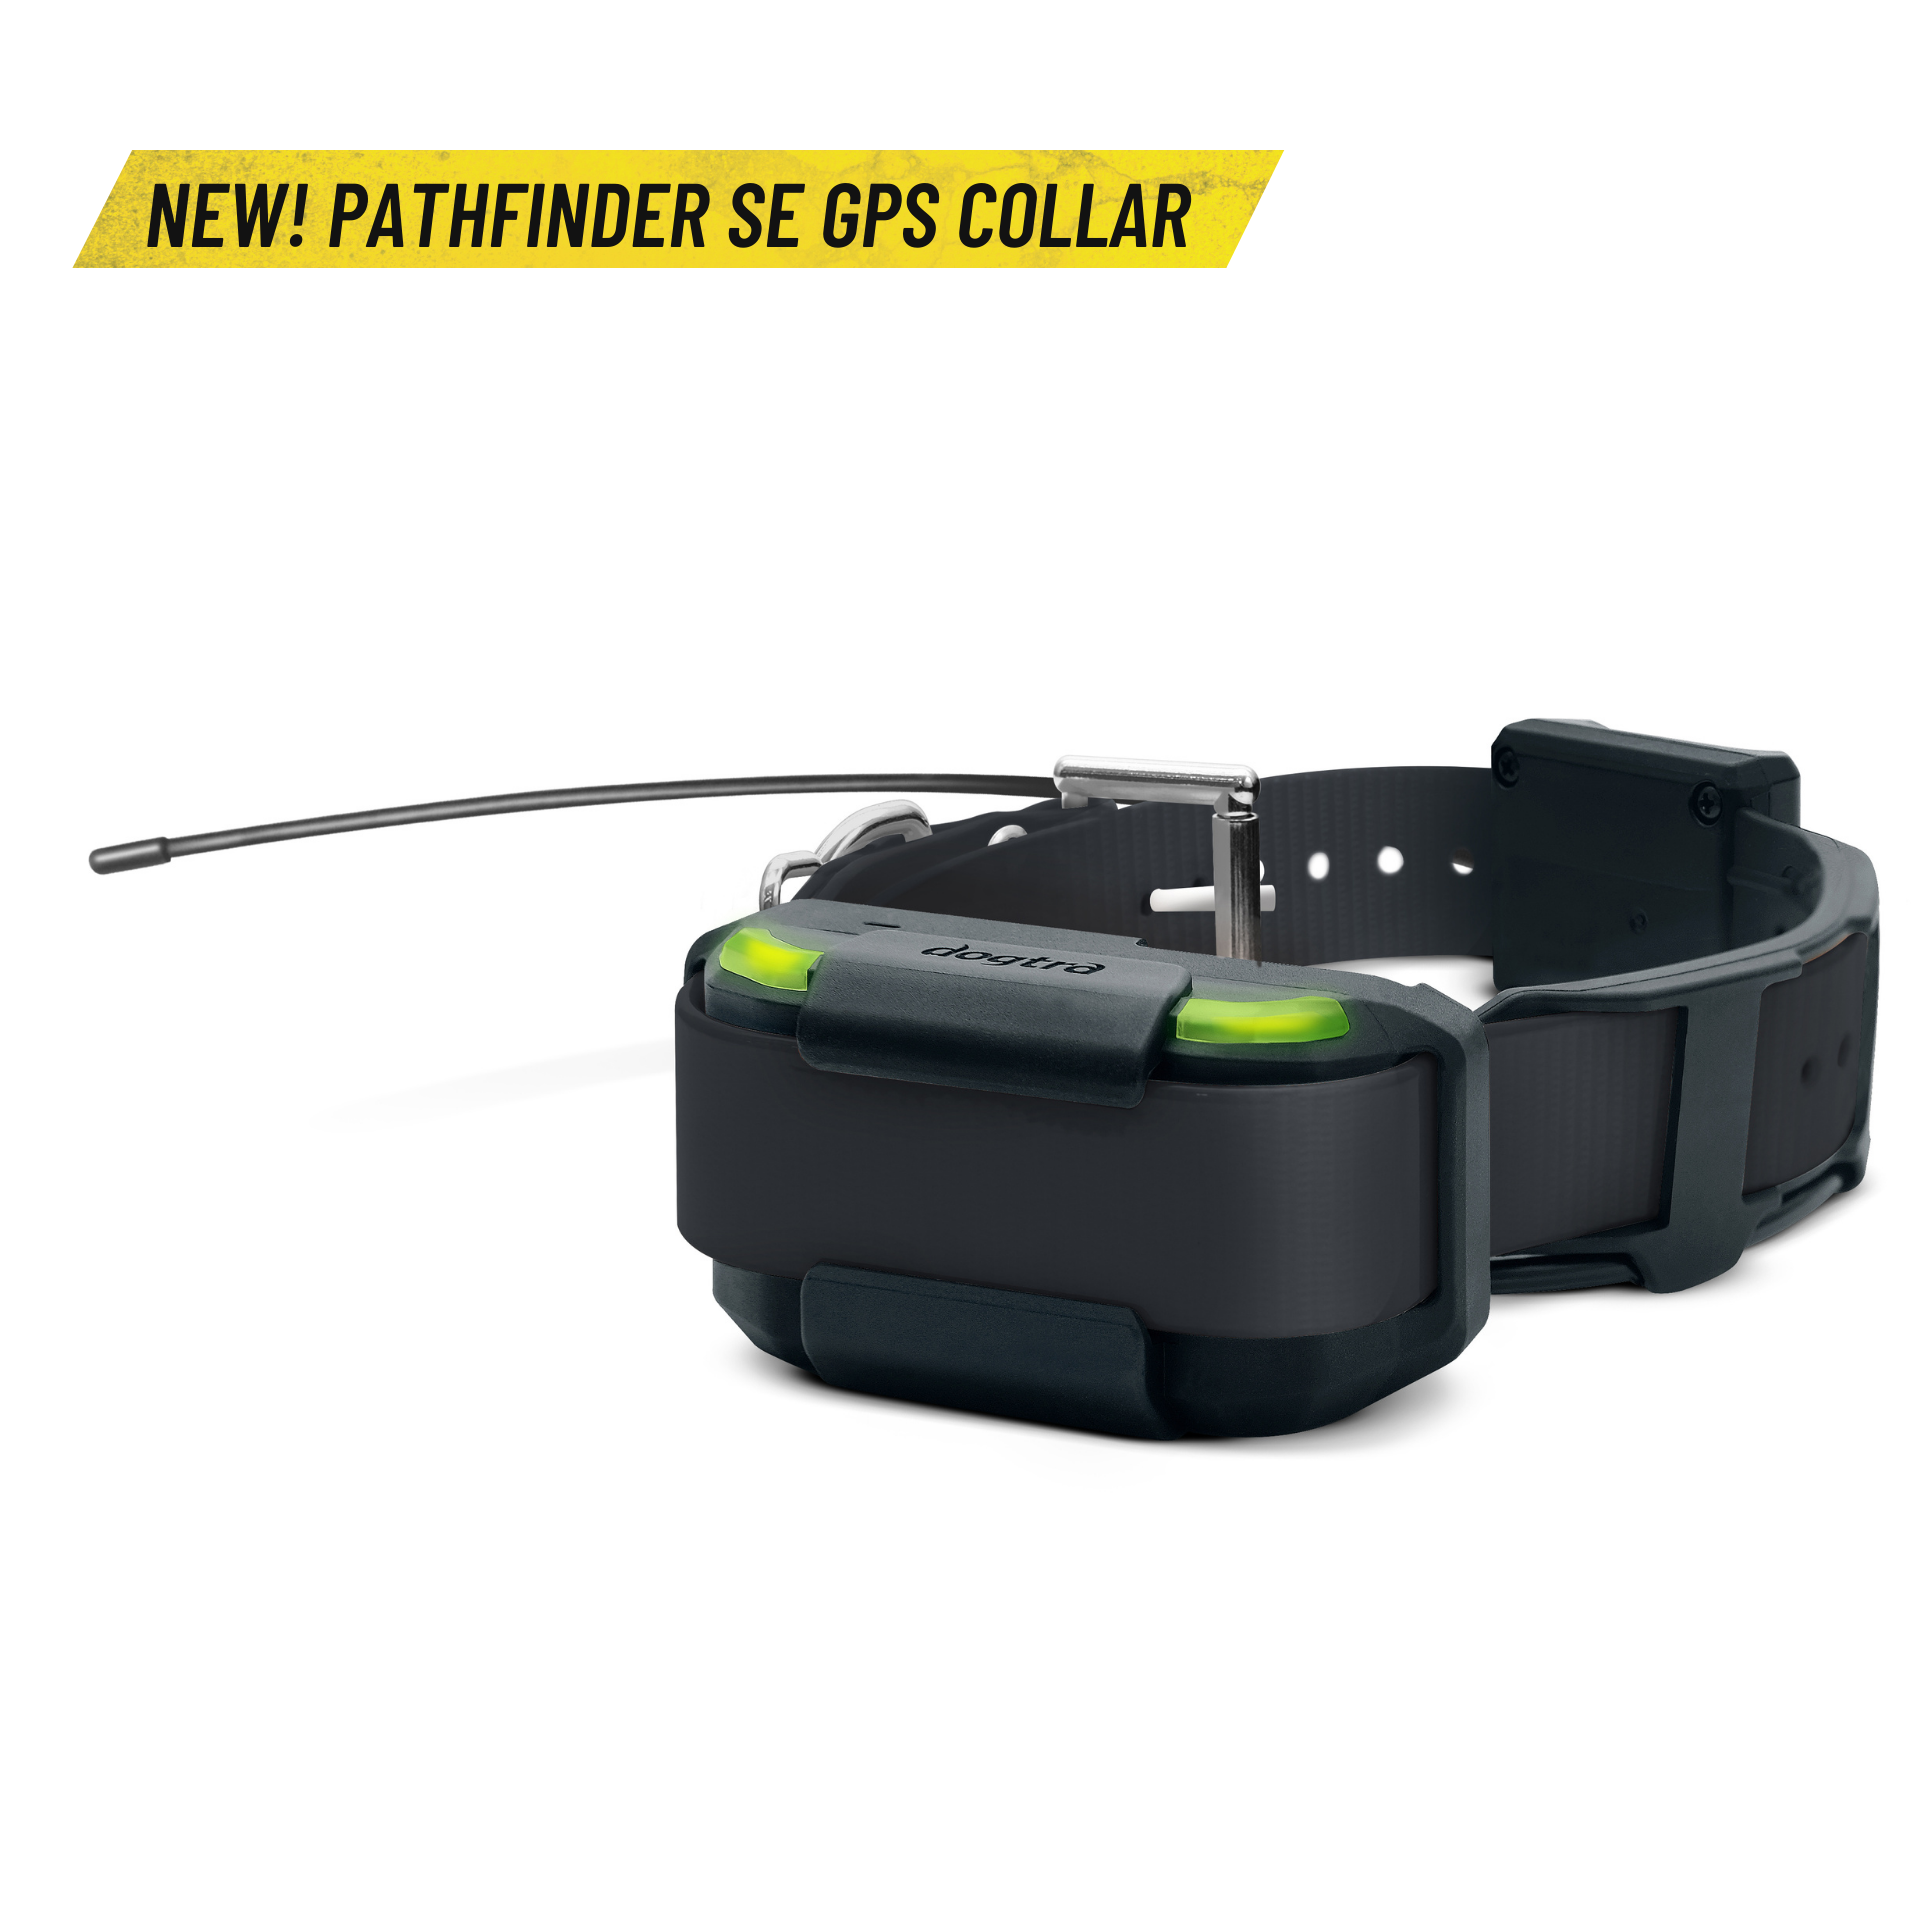 PATHFINDER SE ADDITIONAL LED GPS COLLAR